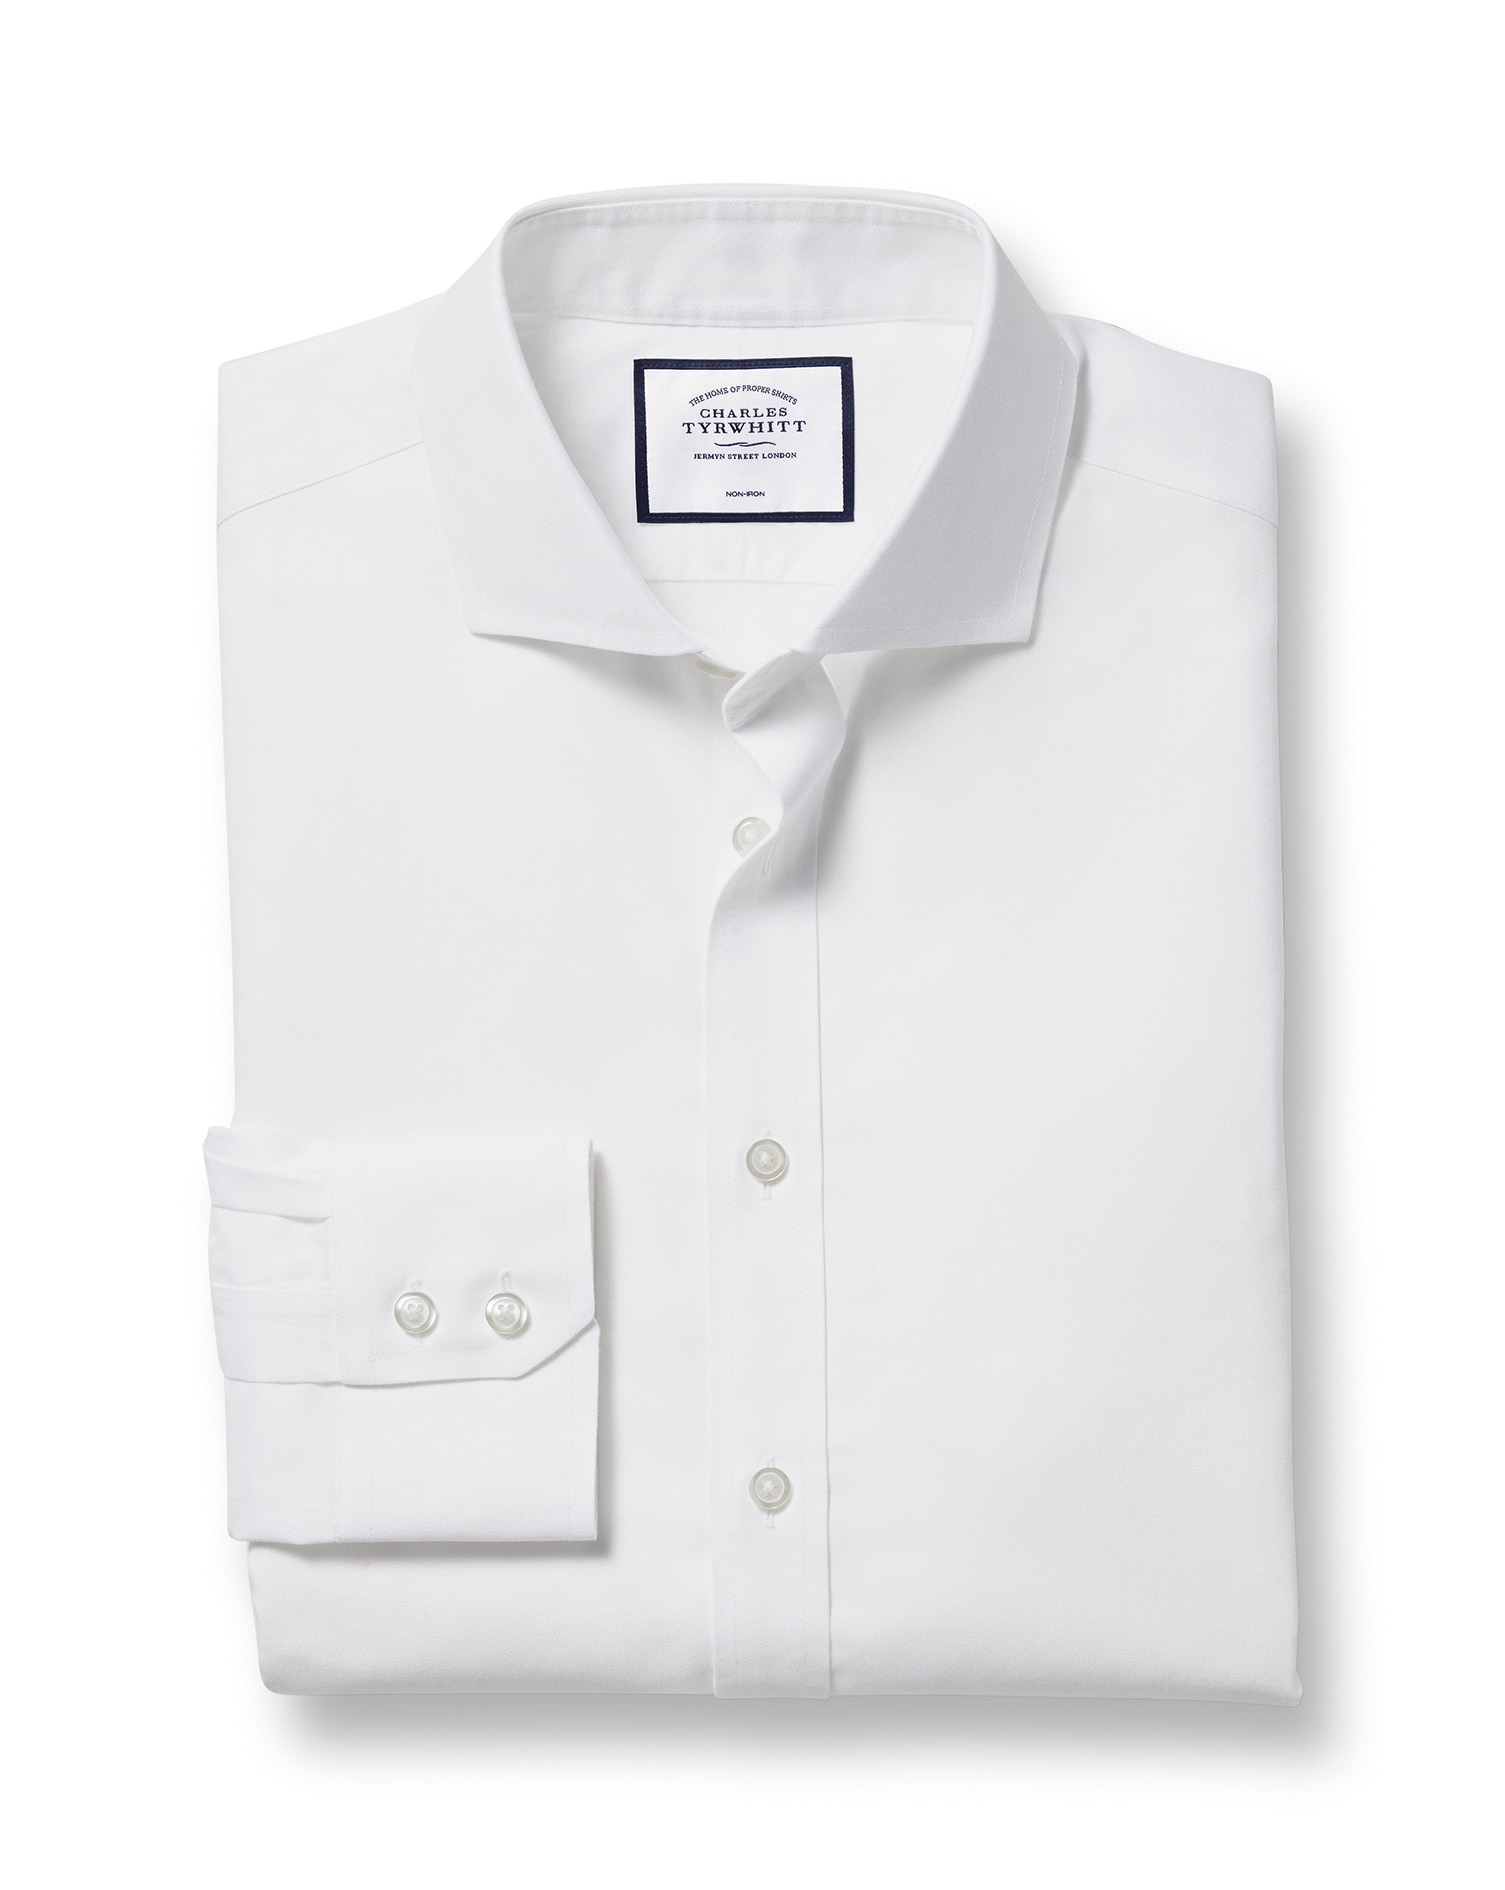 Extra Slim Fit White Non-Iron Twill Extreme Cutaway Collar Cotton Formal Shirt Double Cuff Size 16.5